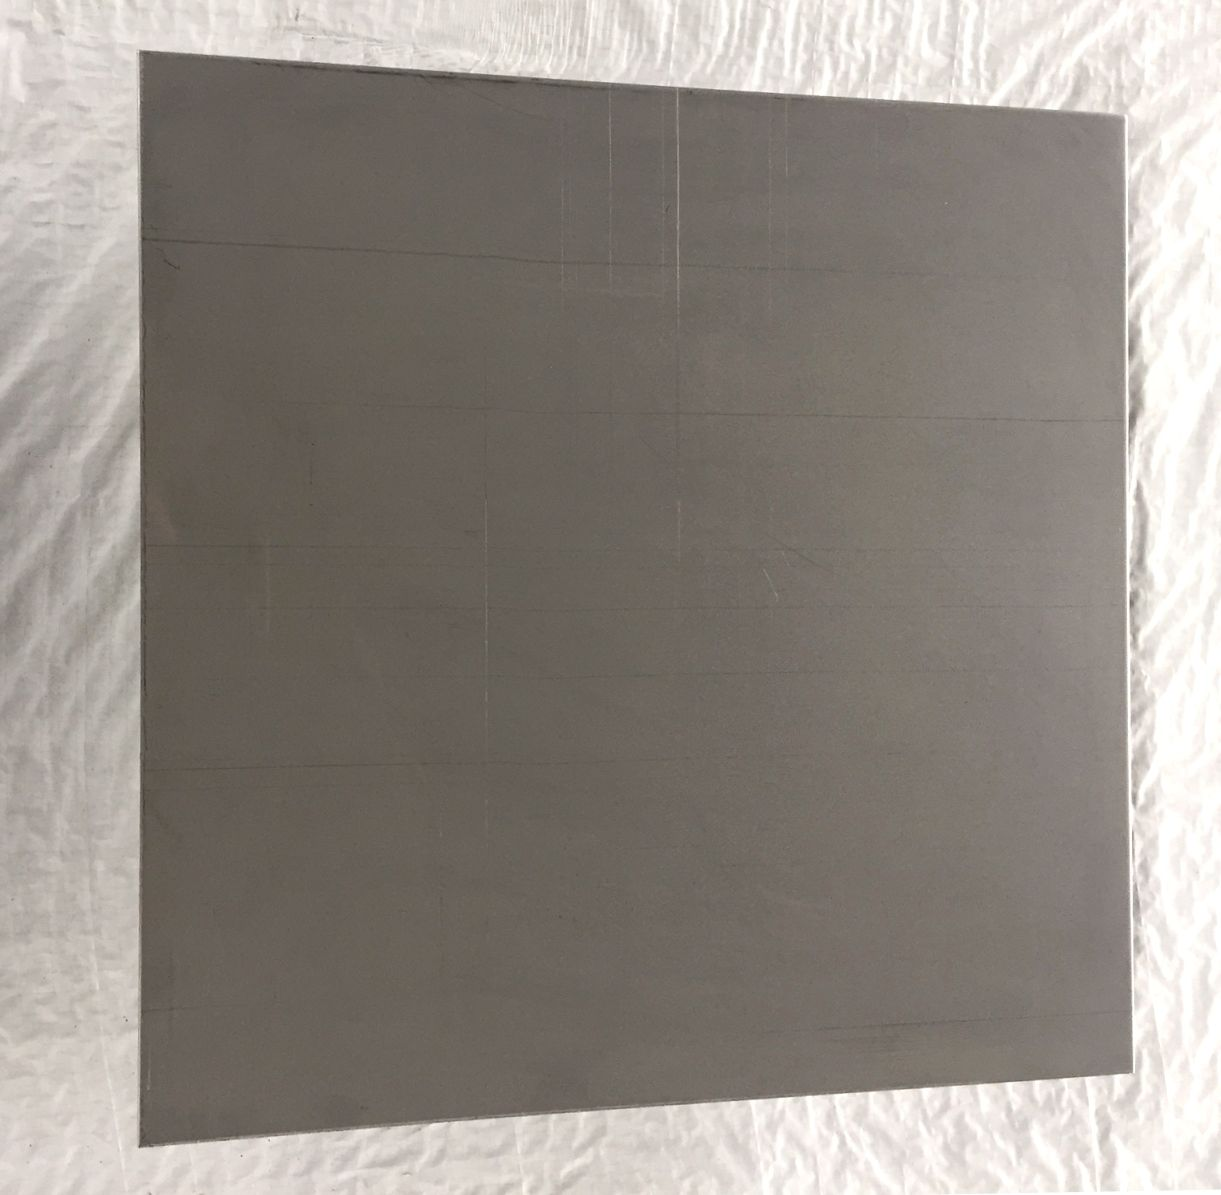 14 Gauge Stainless Steel 12 X 12 Type 304 2b Finish Small Standard Sizes At Steeltec Products Galvanized Metal Sheet Metal Stainless Steel